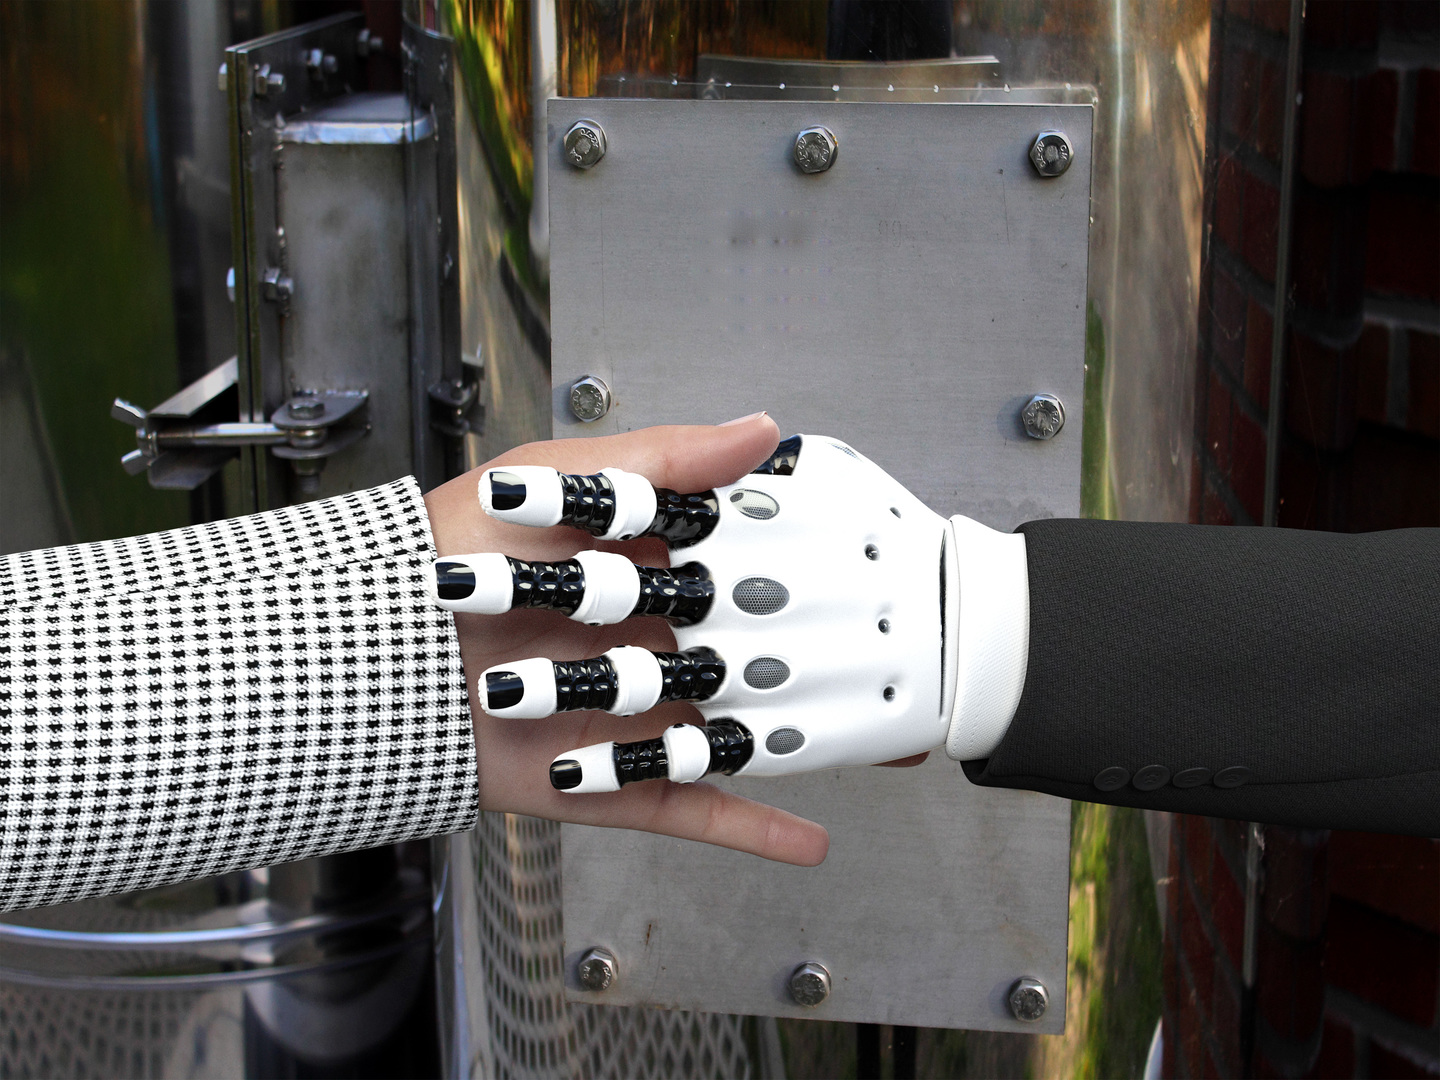 Cooperative robots can be your new colleagues in warehouse logistics